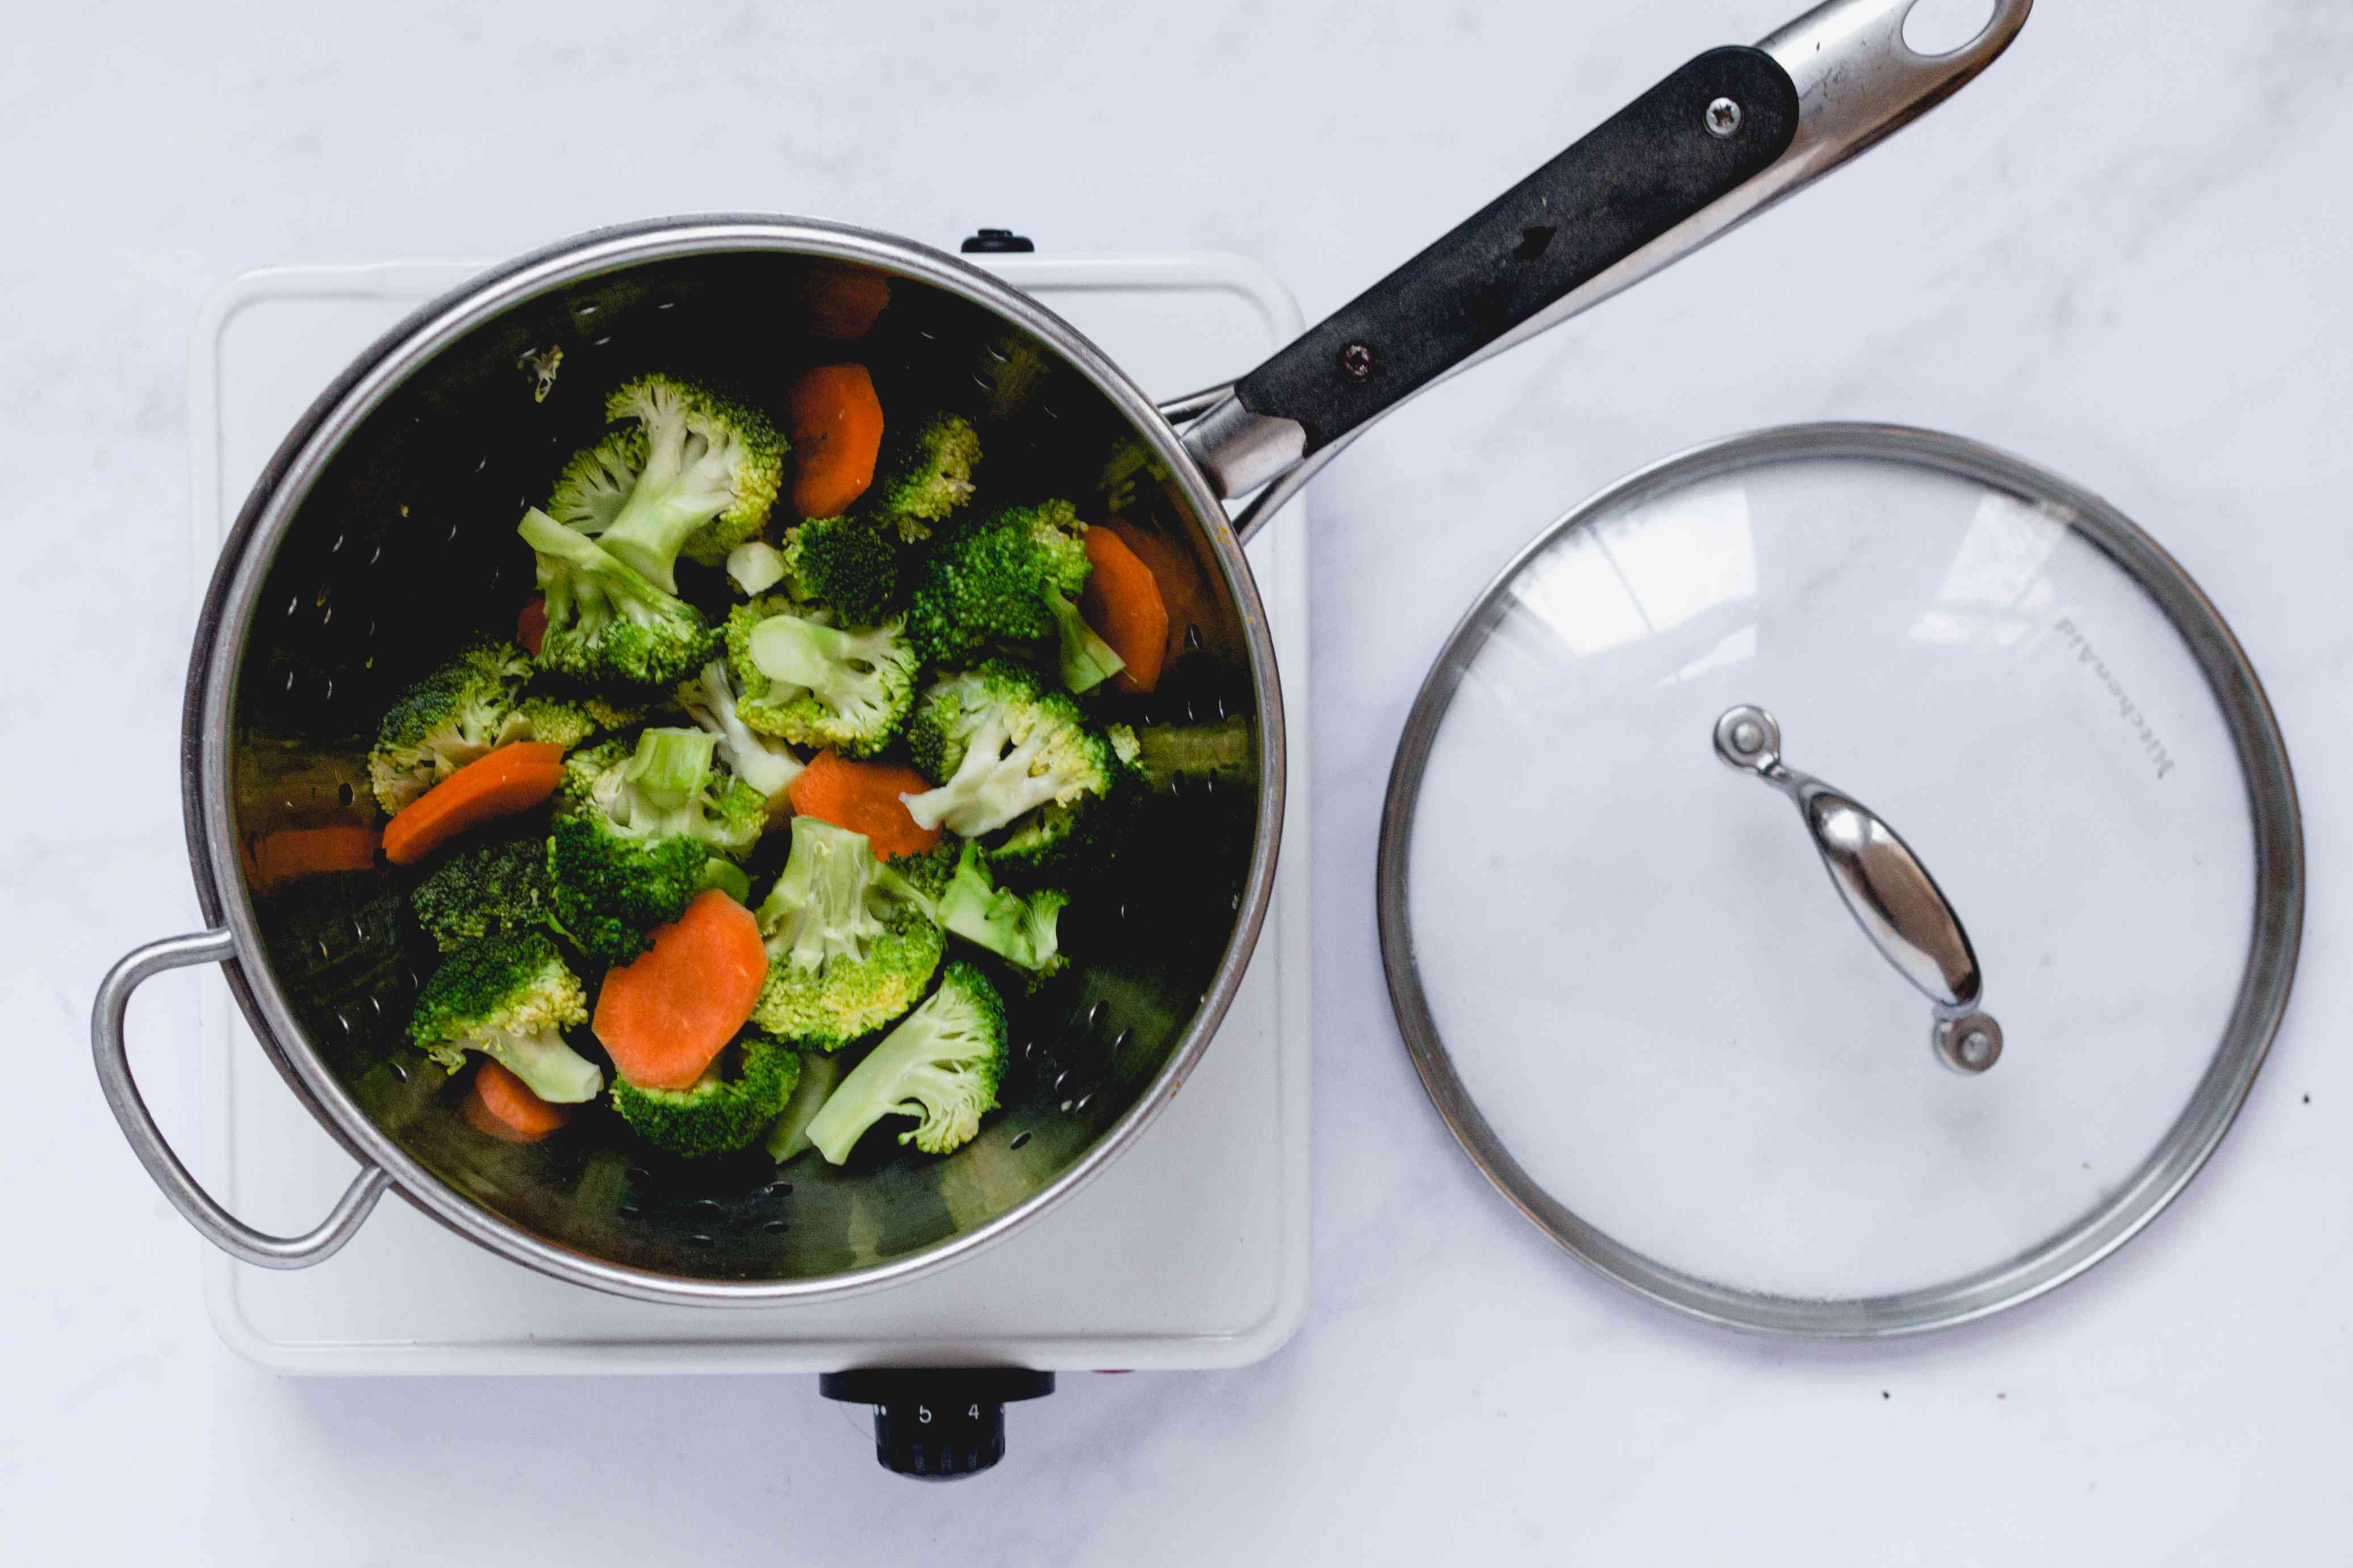 steam the broccoli florets and sliced carrots